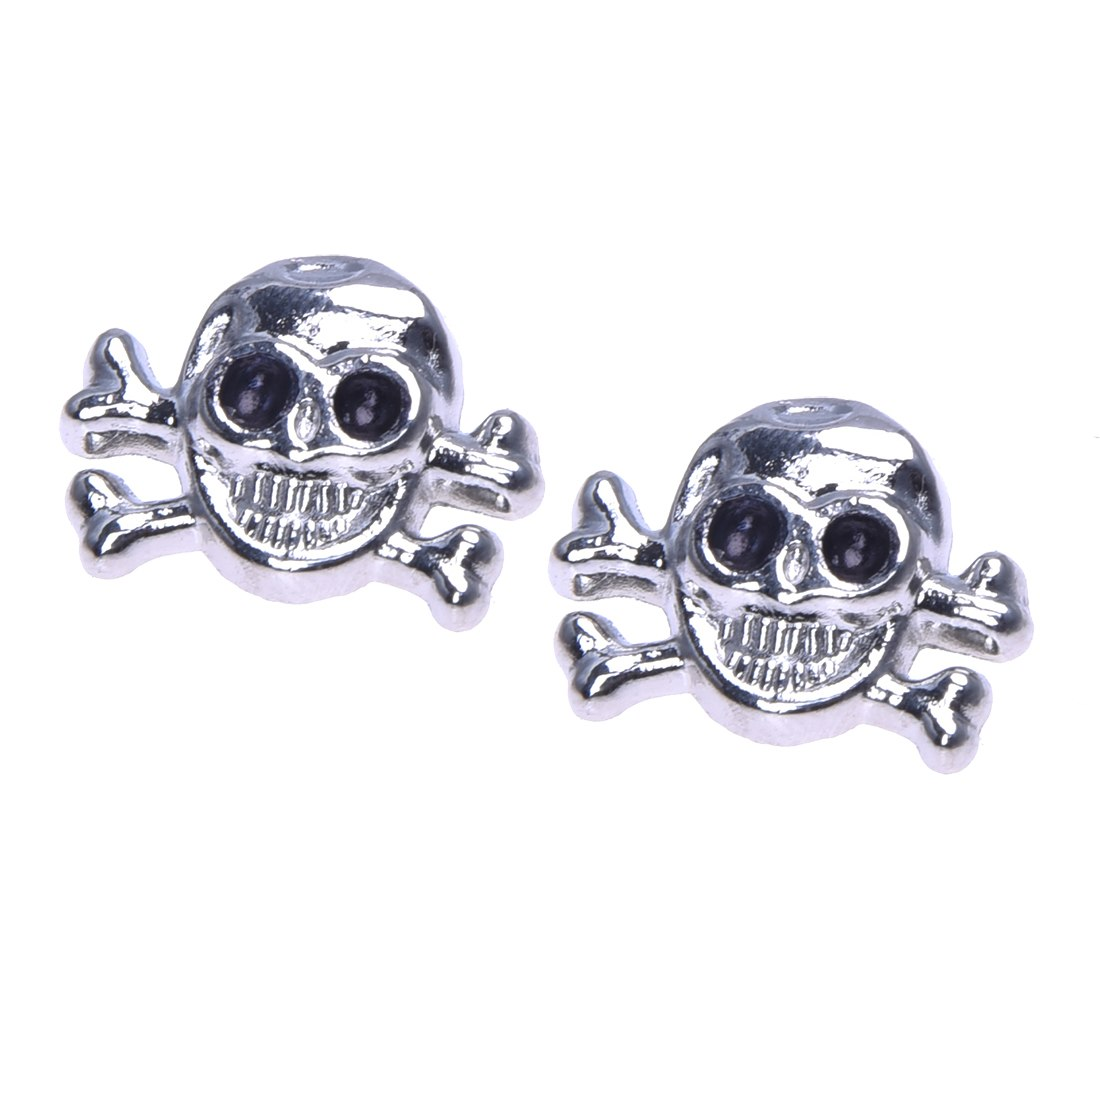 20X Sconces Rivets Skull Metal 14 * 18mm Tacks Bag / Shoes / Gloves